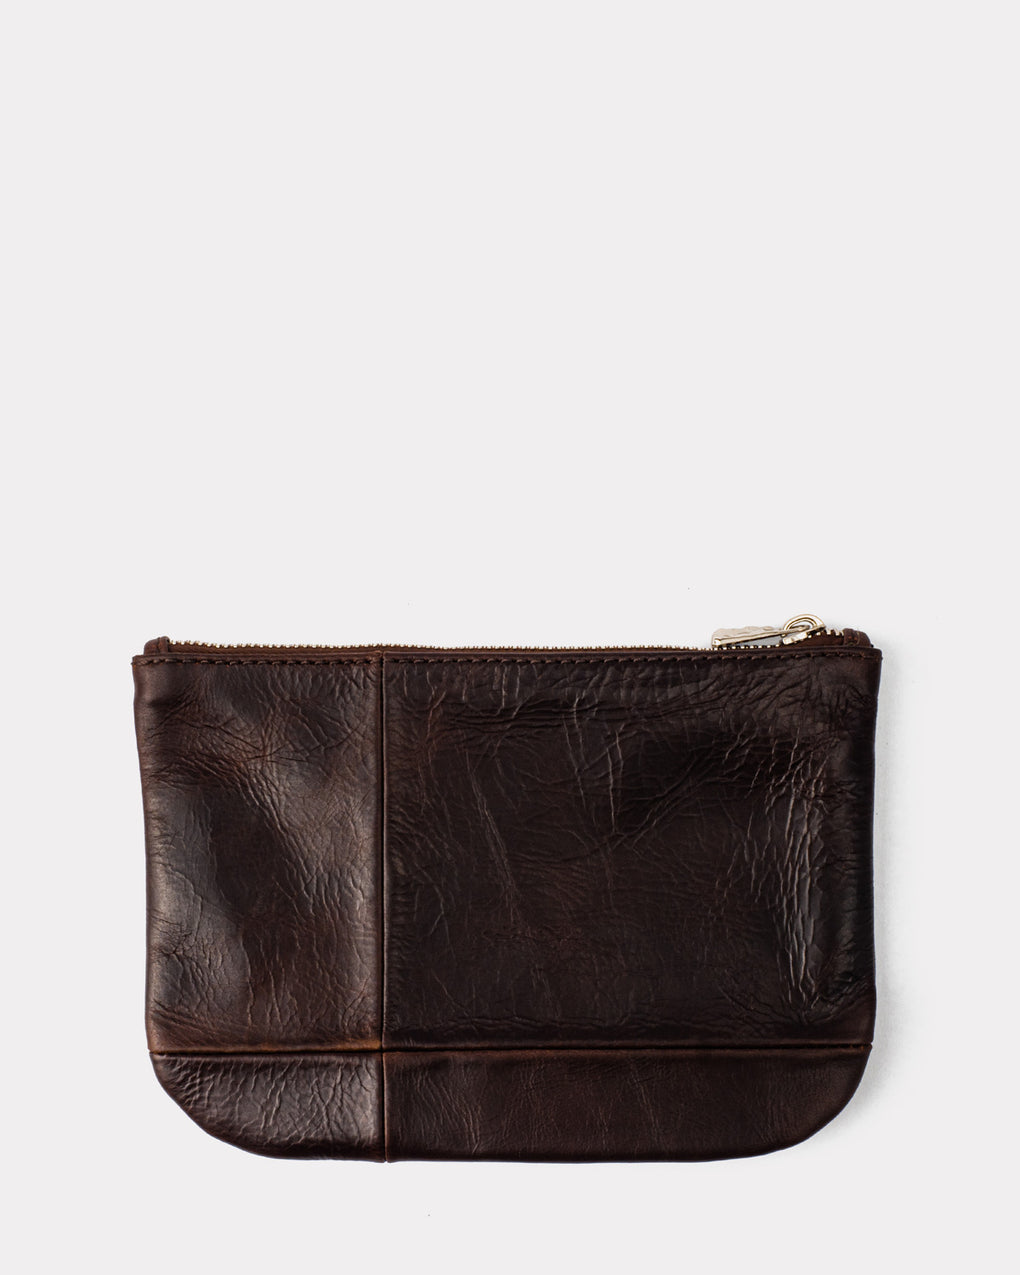 Bauhaus Pouch Medium - Burnt Amber